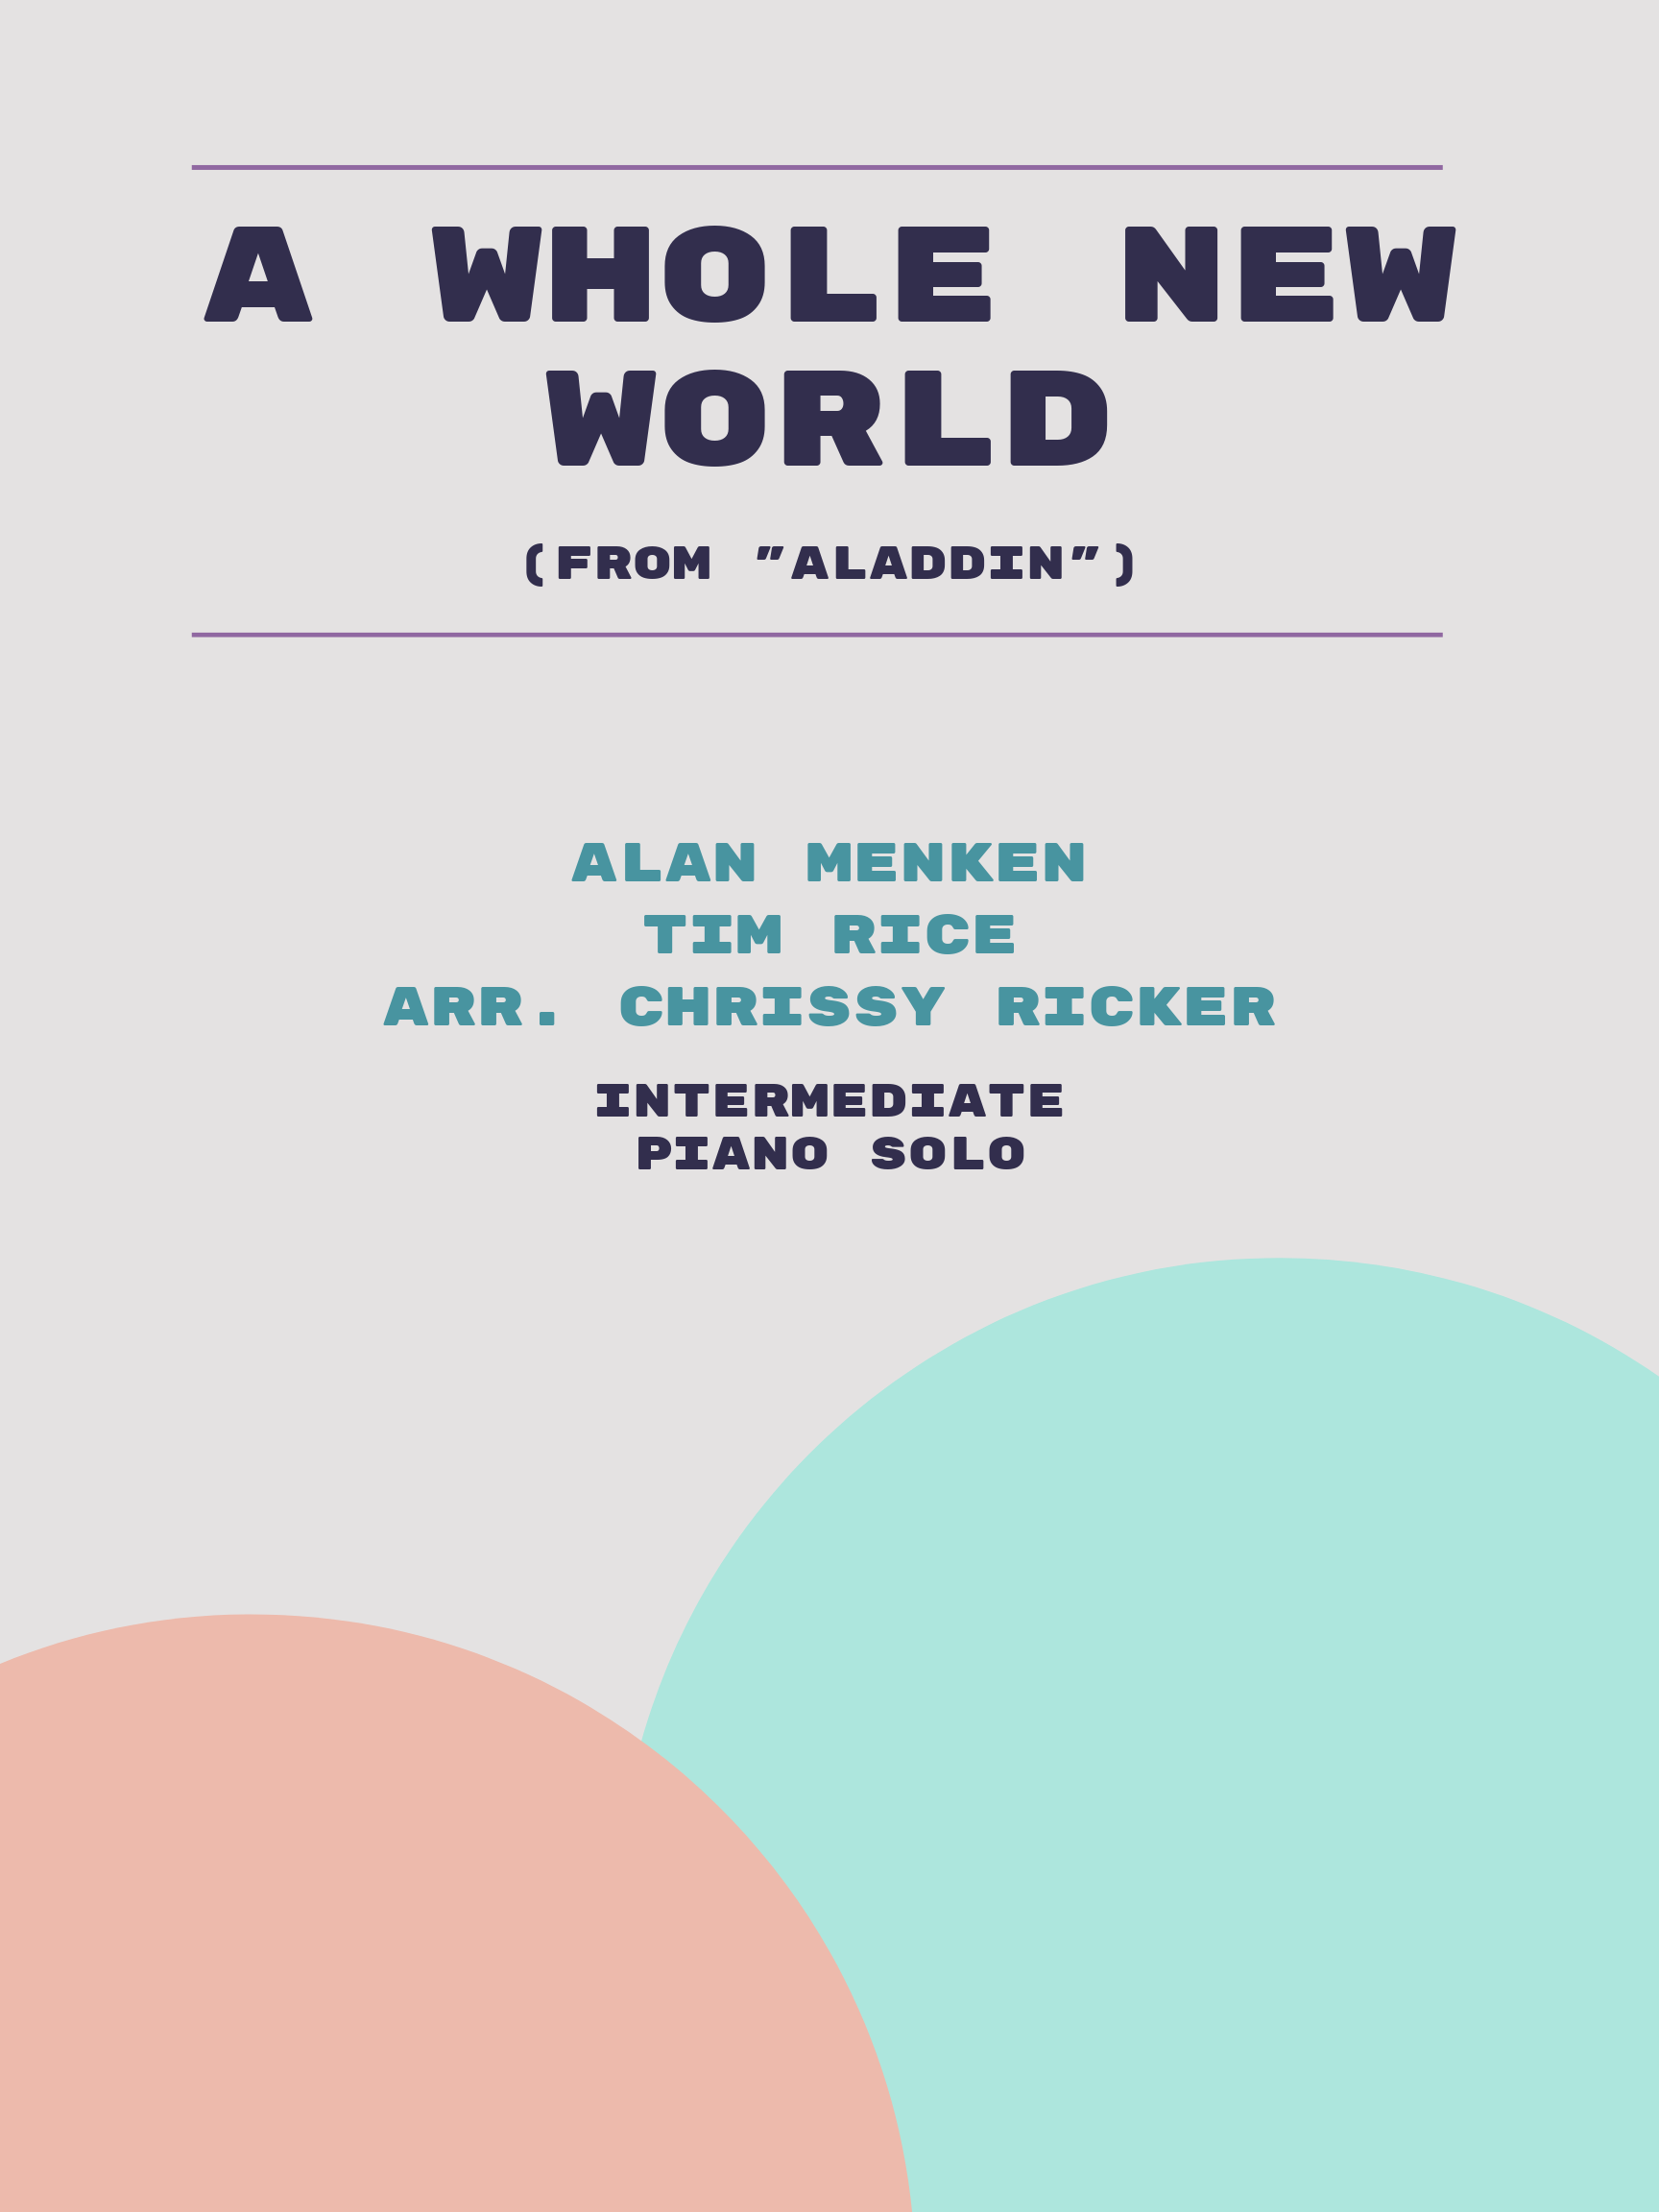 A Whole New World by Alan Menken, Tim Rice